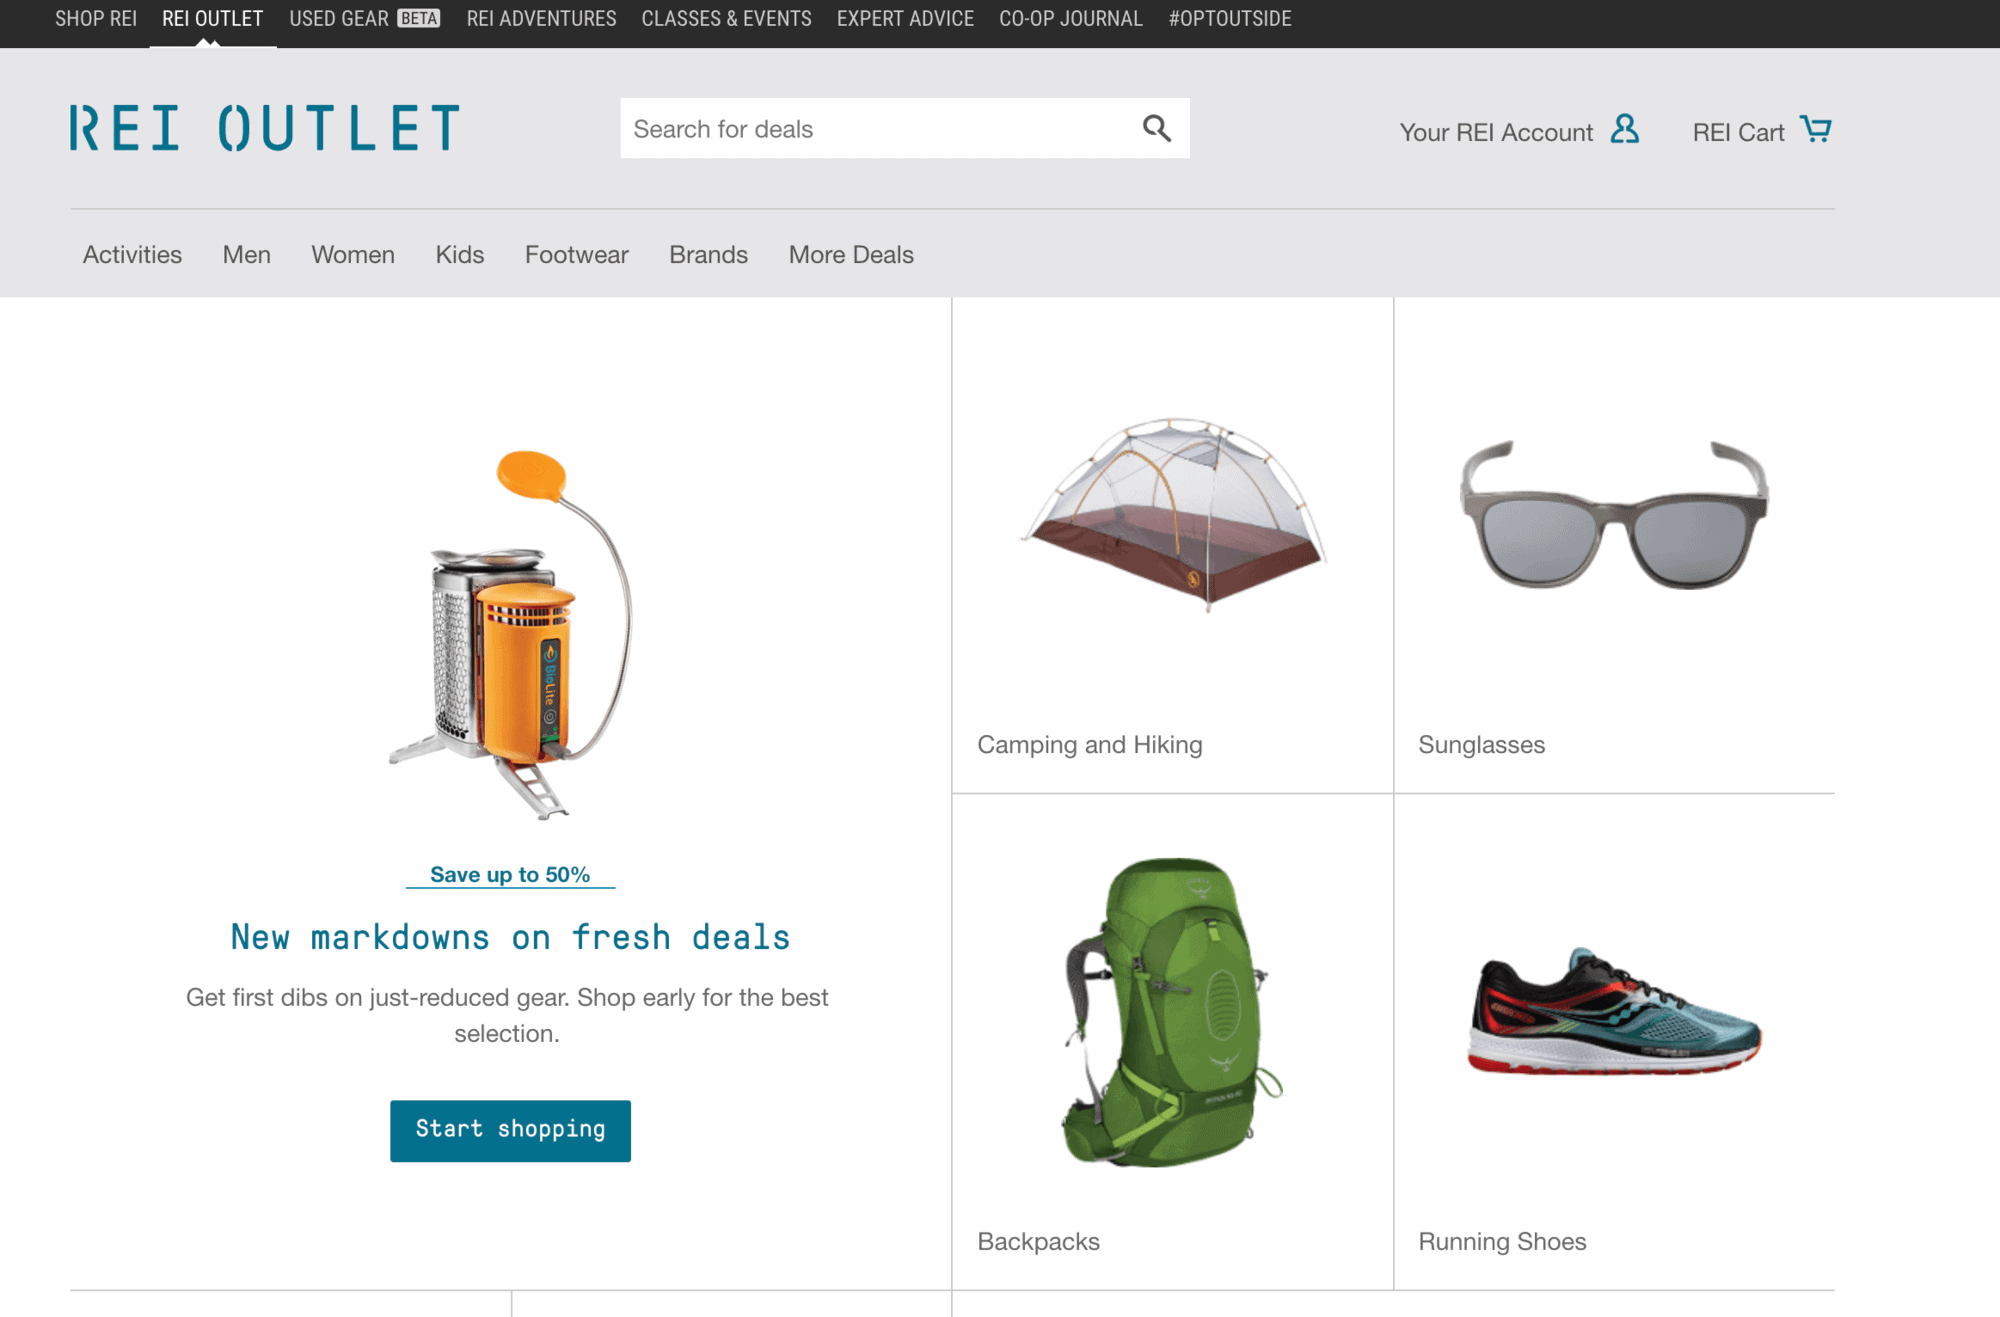 REI Outlet - discounted outdoor gear